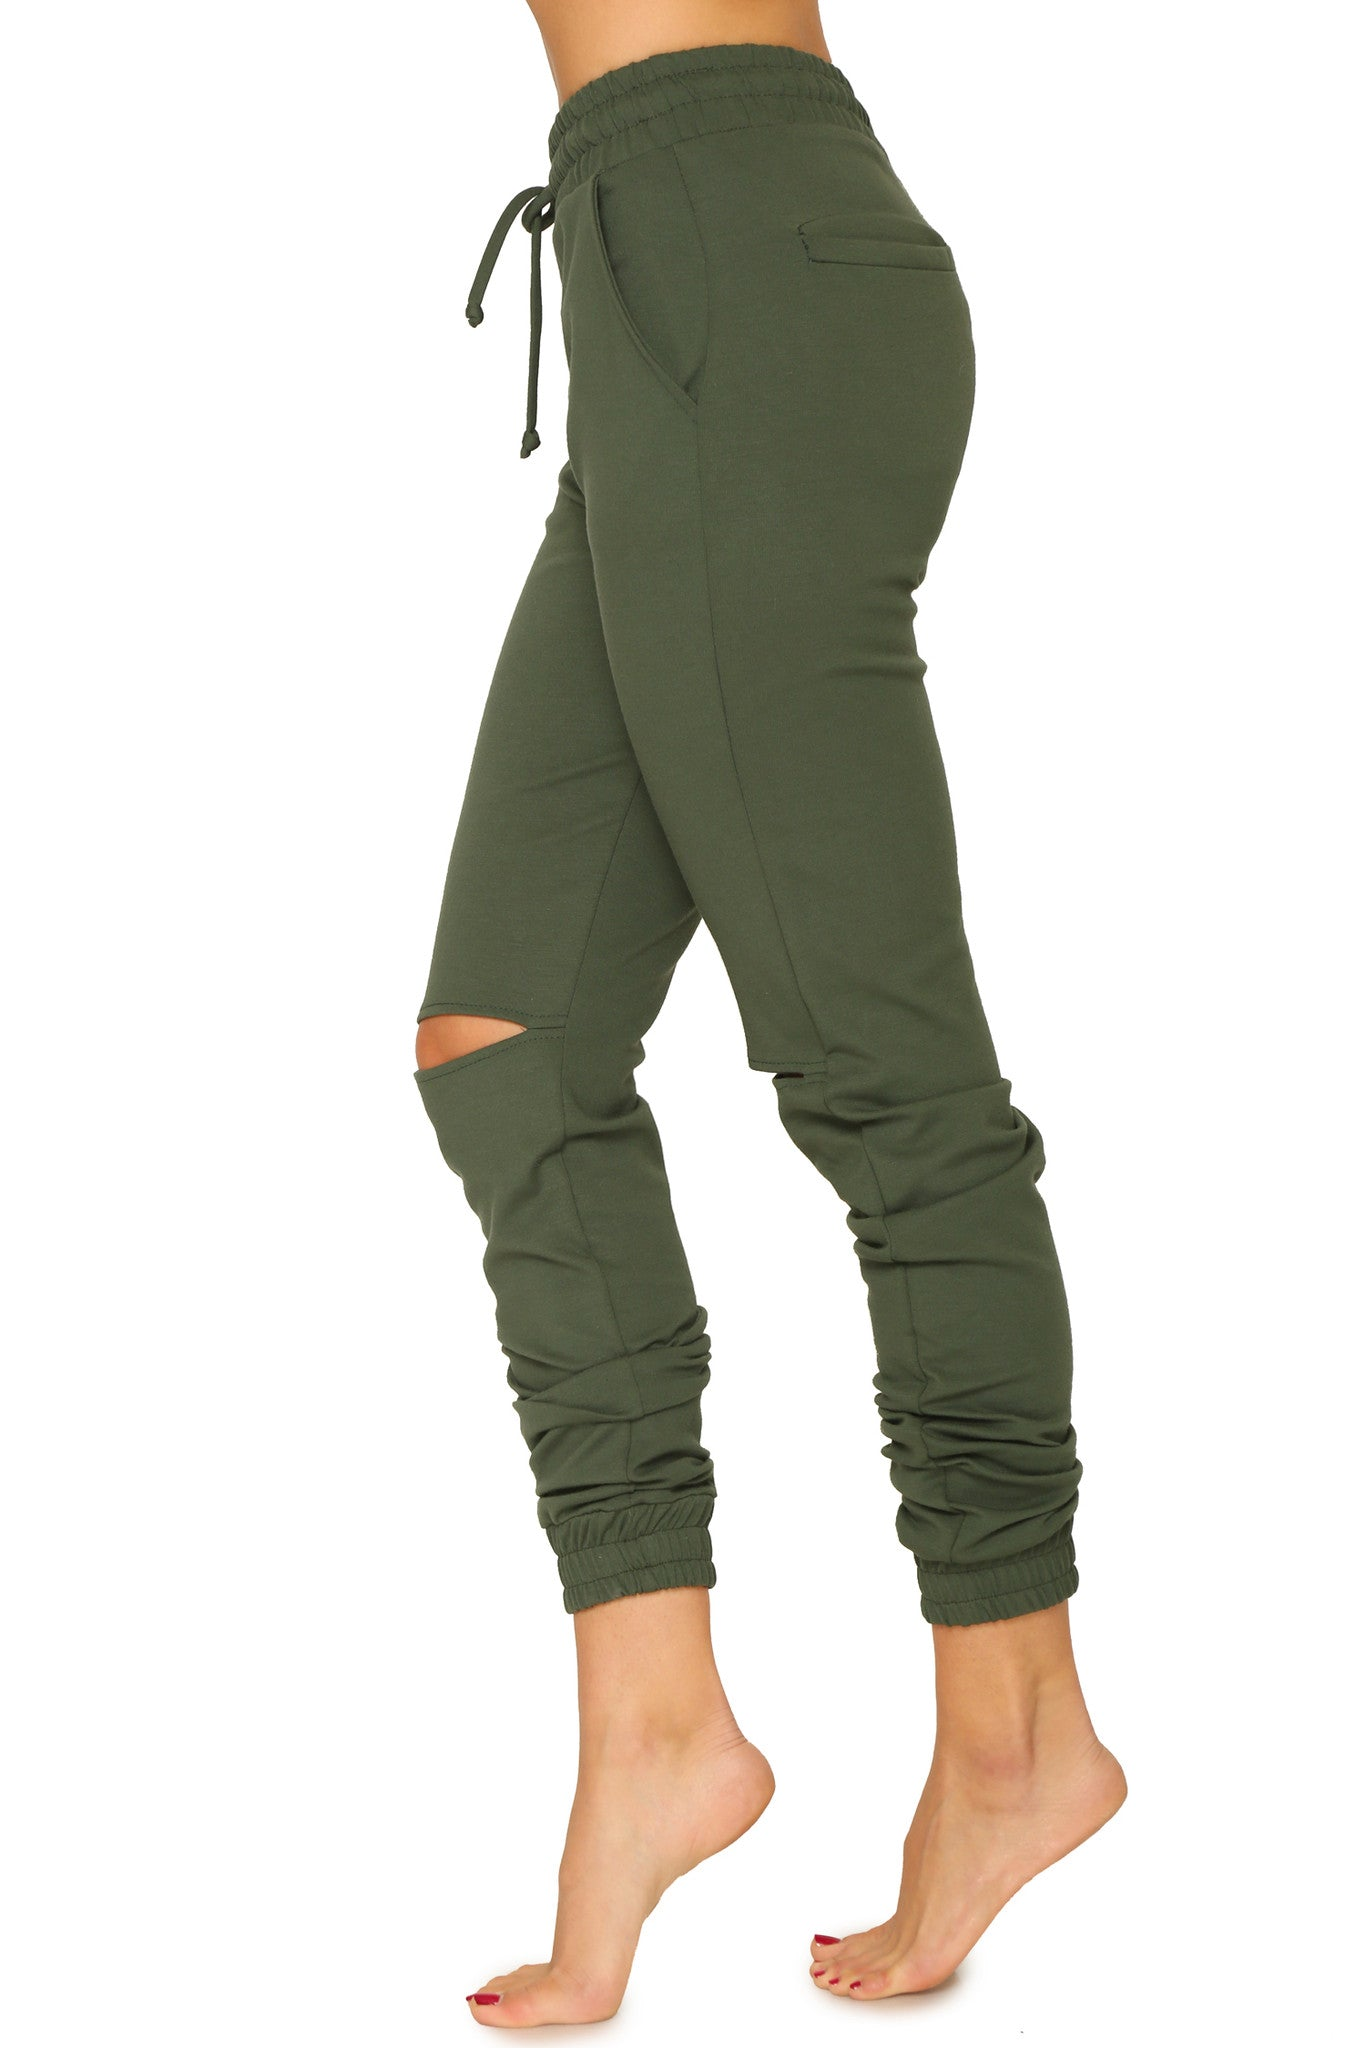 TAWNY SWEAT PANTS - Glam Envy - 5